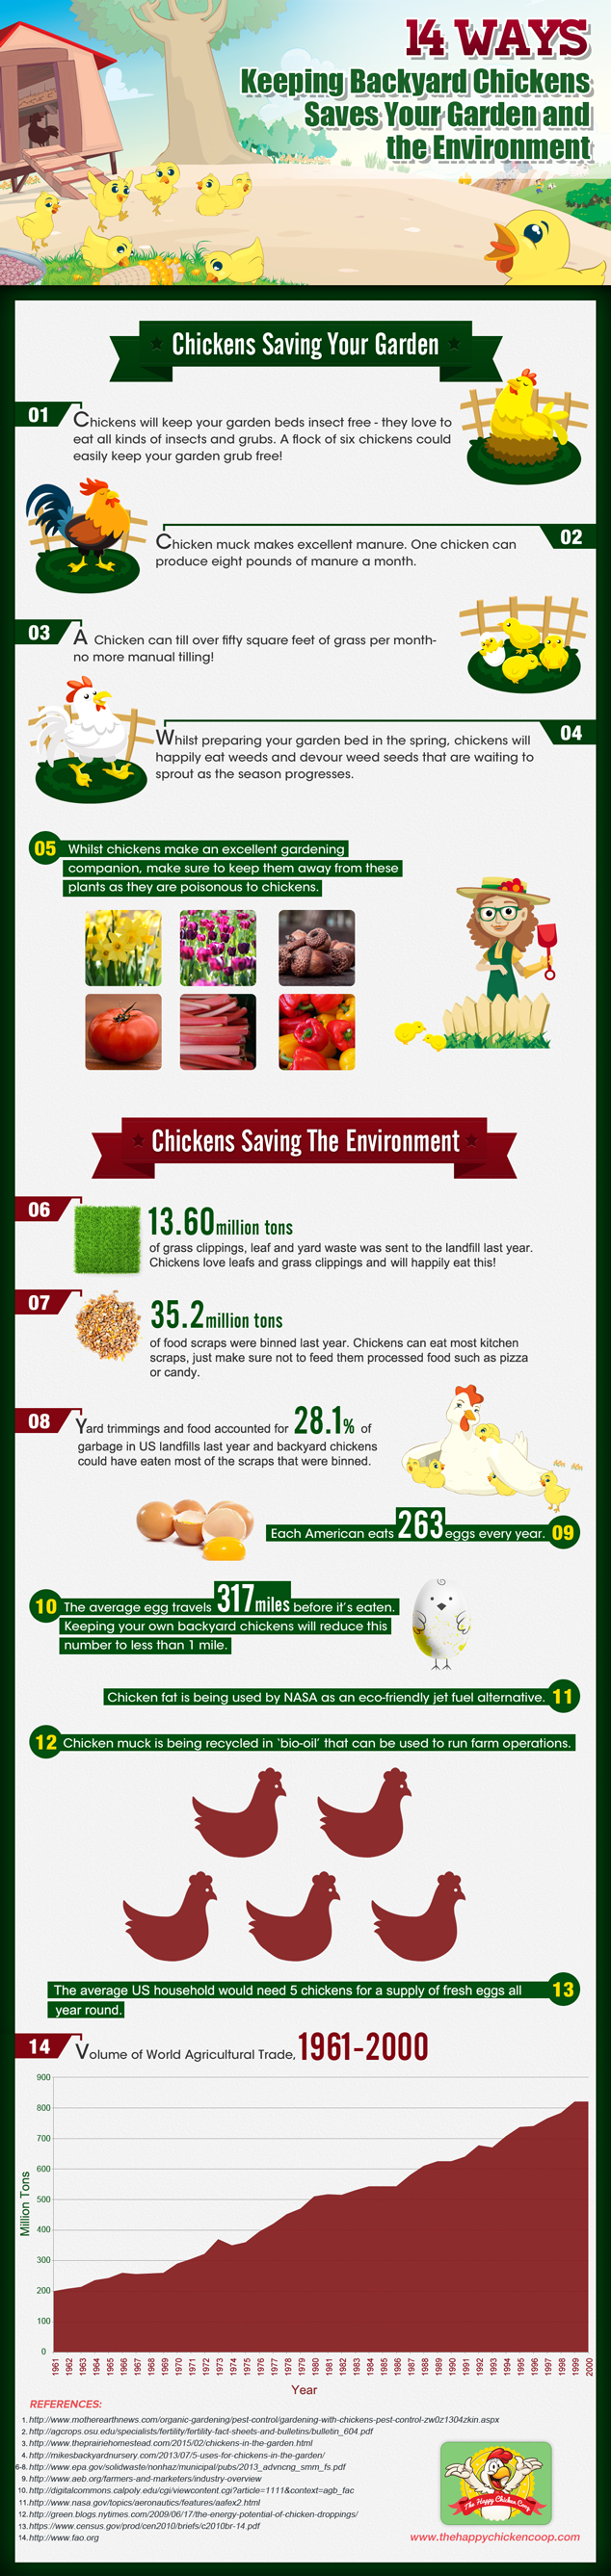 14-Ways-Keeping-Backyard-Chickens-Saves-Your-Garden-and-the-Environment-...-1